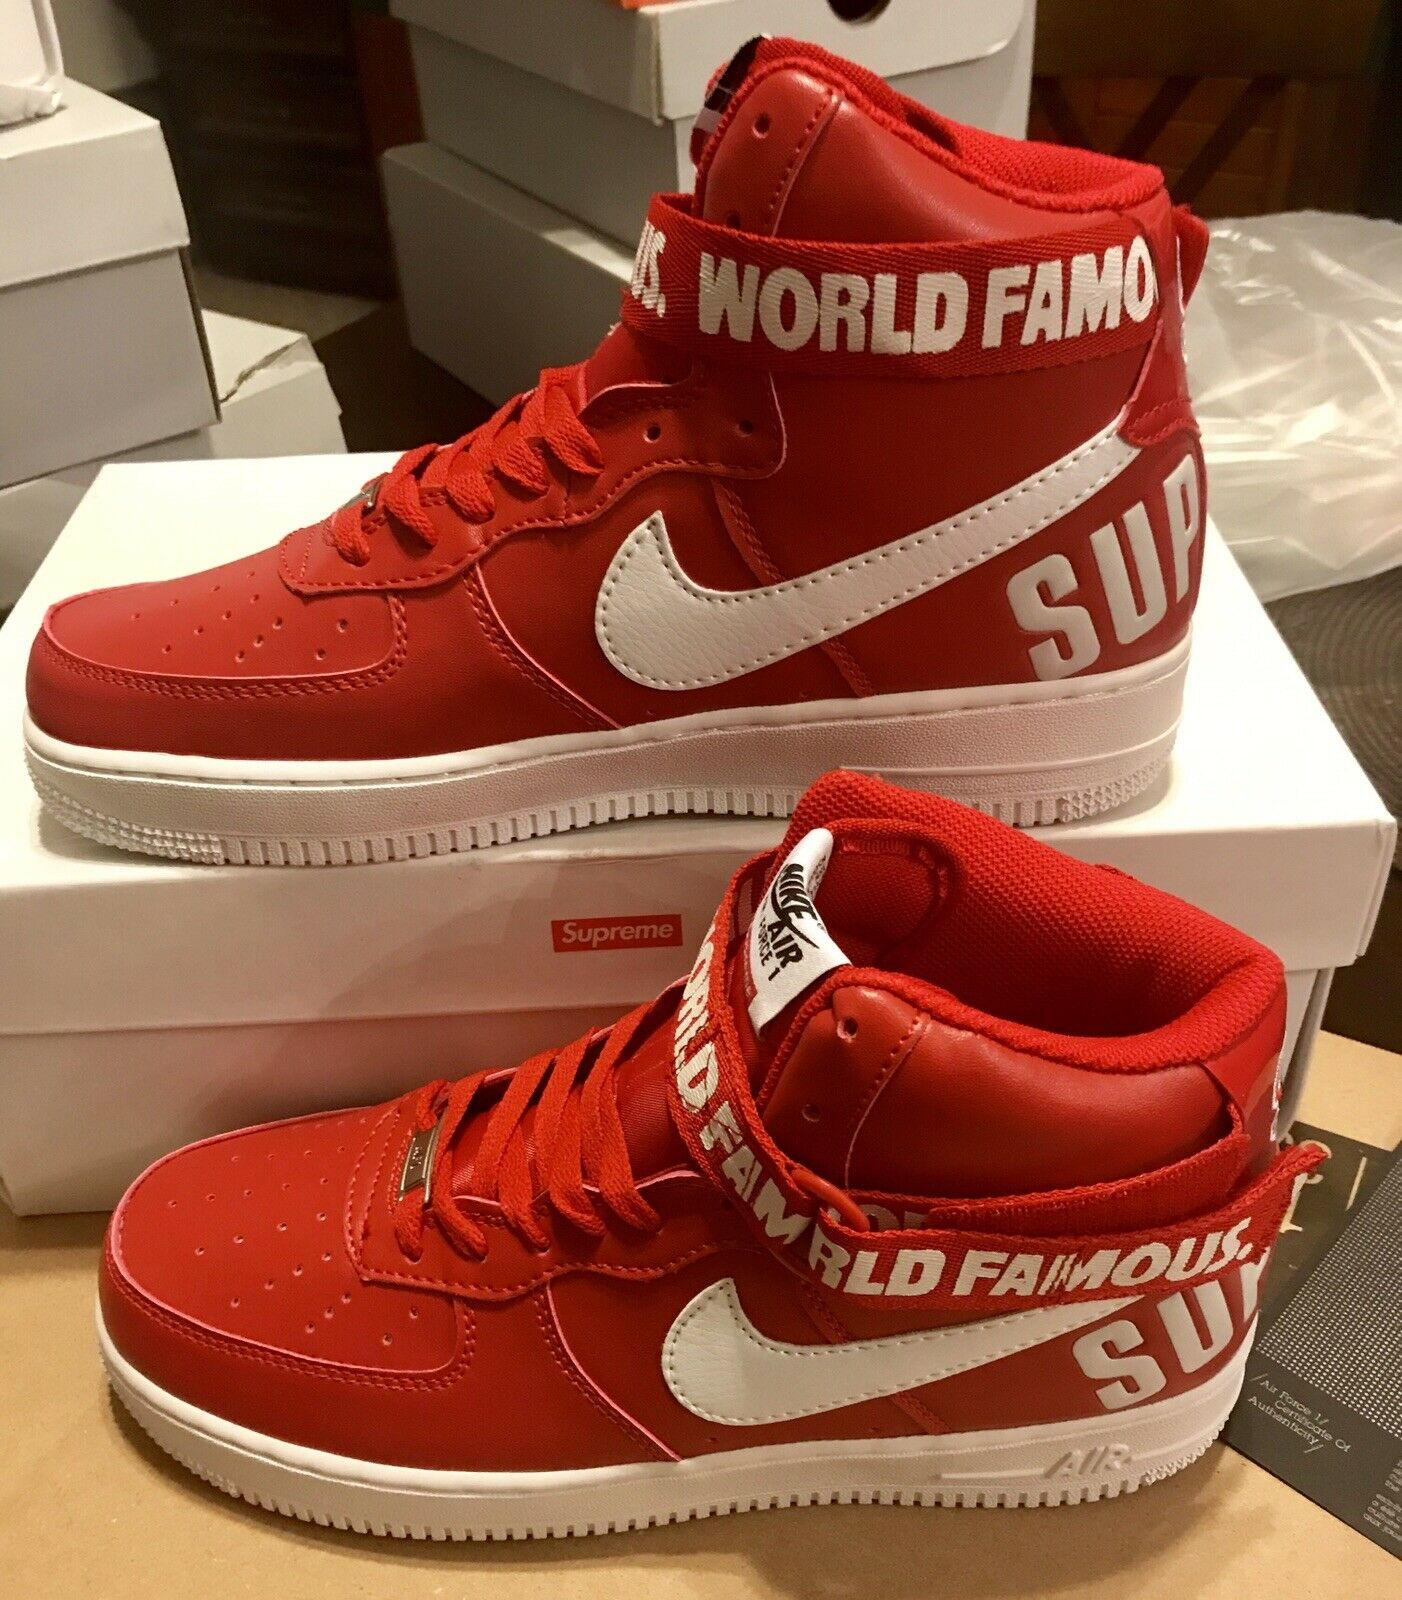 59daddaef NIKE Air Force 1 High SUPREME X World famous Red White Size 9.5 698696 610  NIB